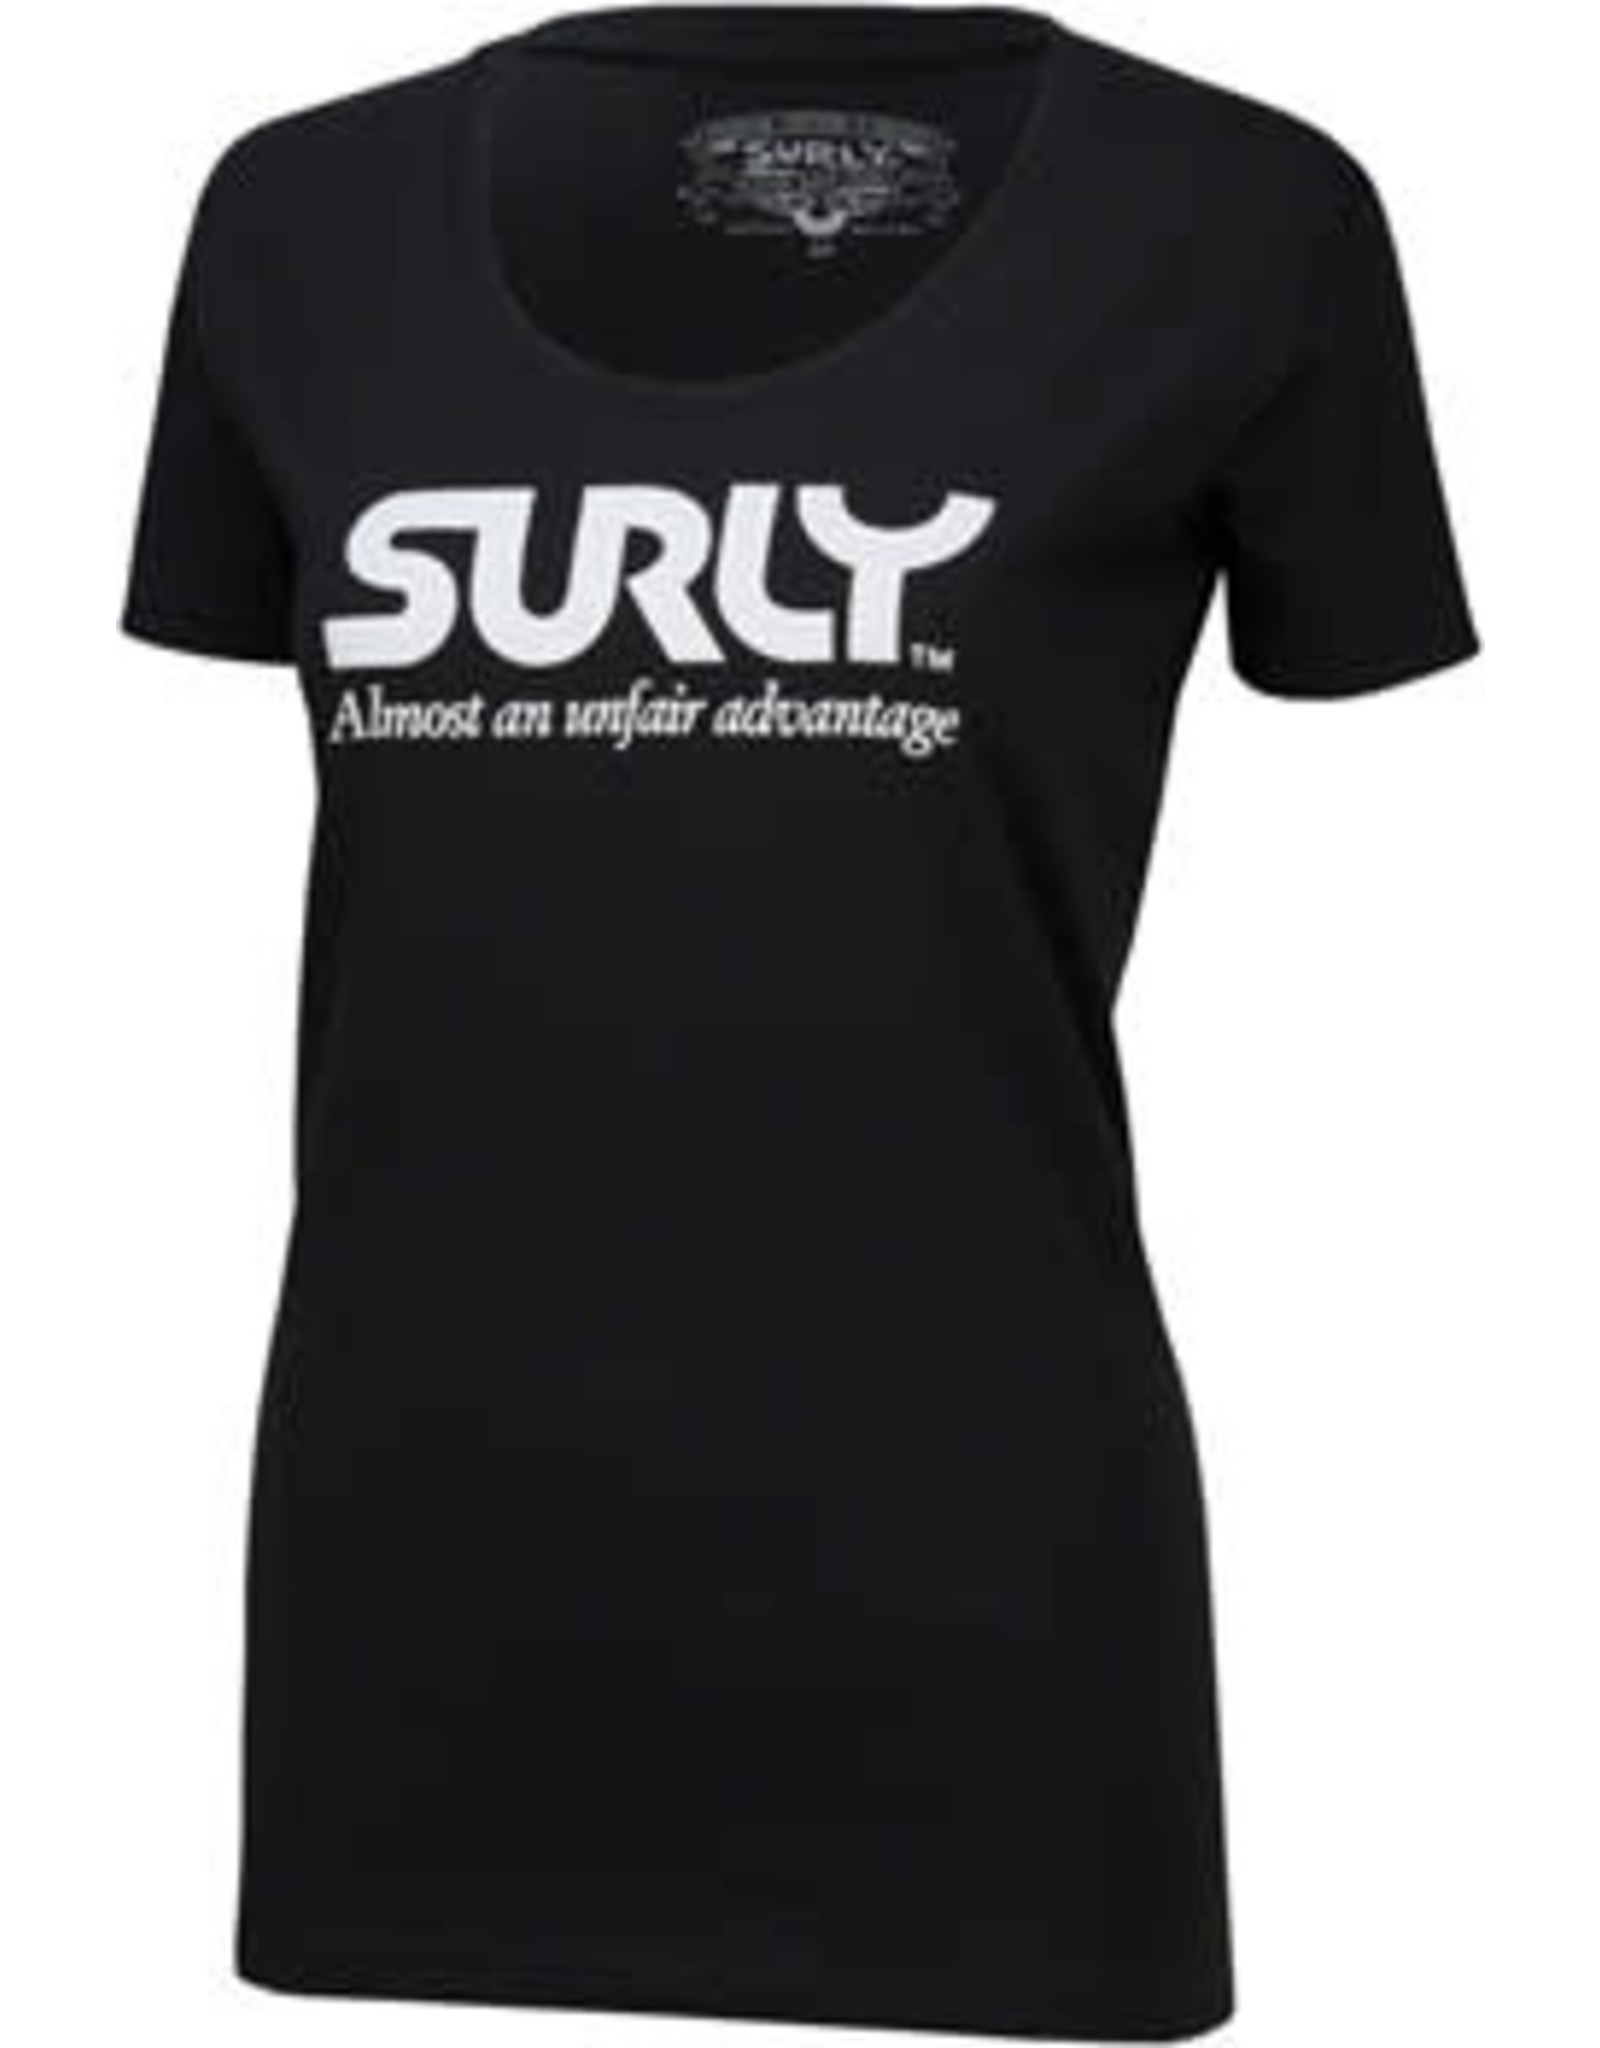 Surly Surly Unfair Advantage Women's T-Shirt: Black MD